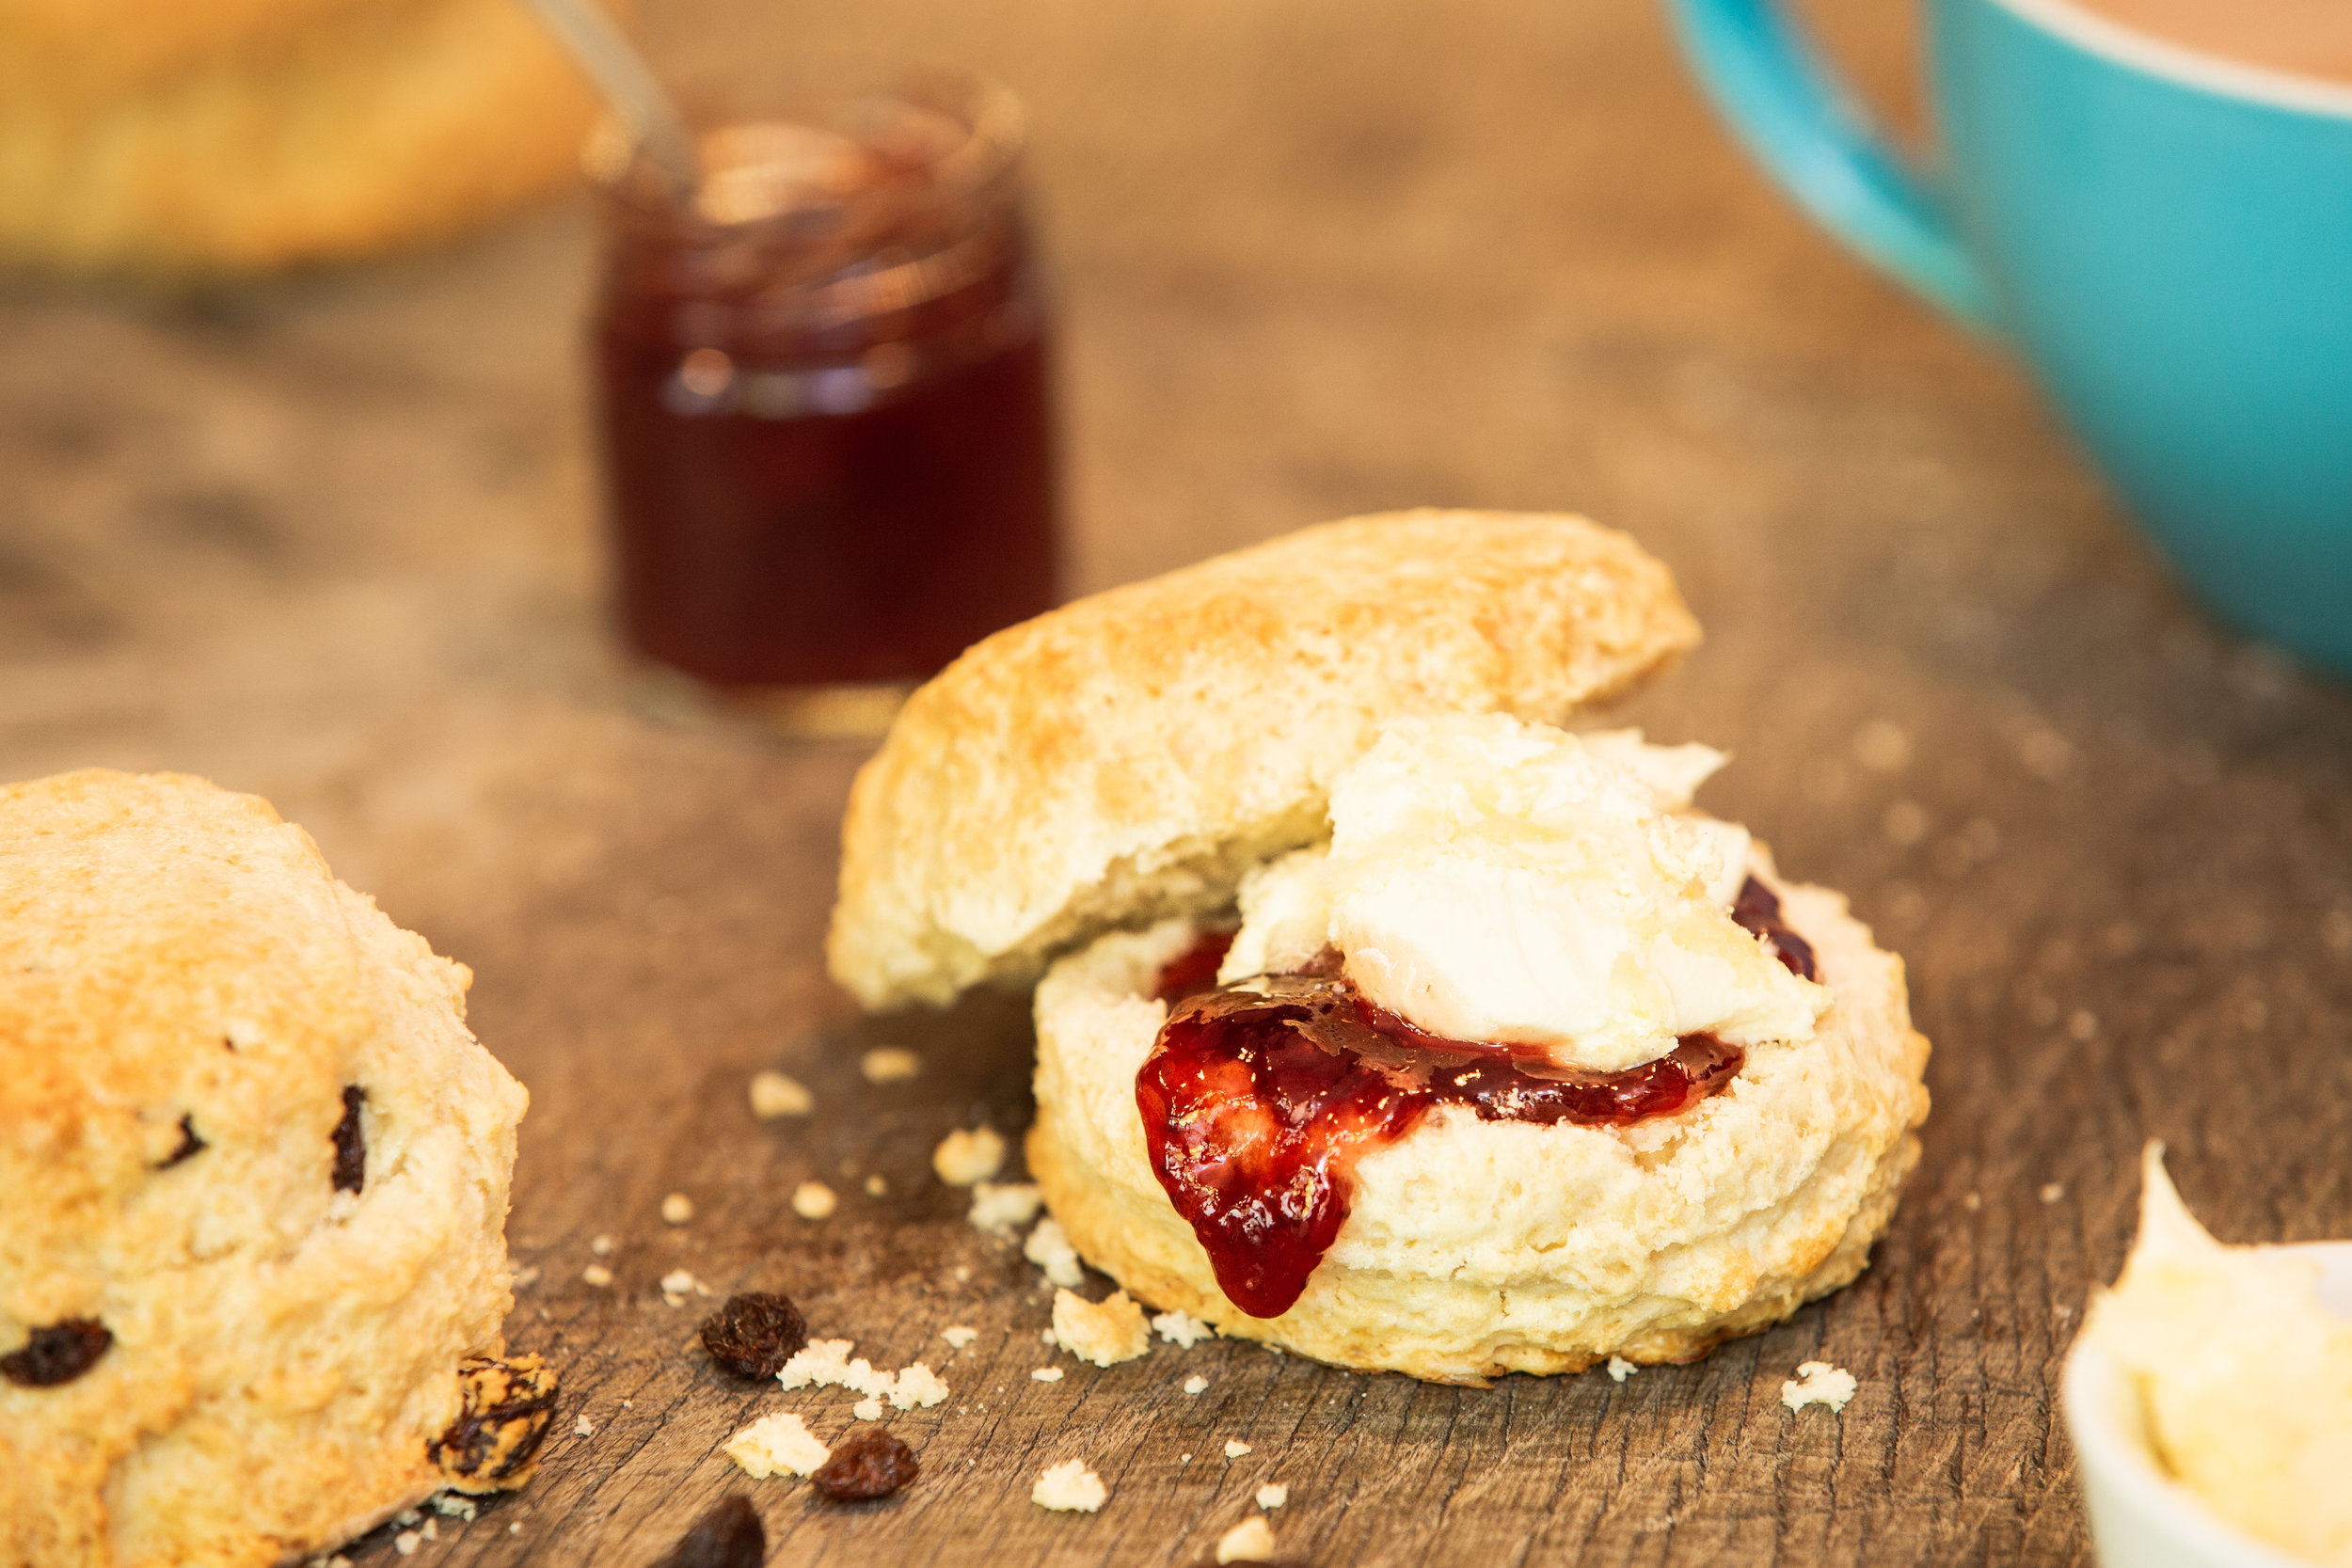 Enjoy a delicious scone with clotted cream and jam.   Call   or   email   to reserve your seat now.